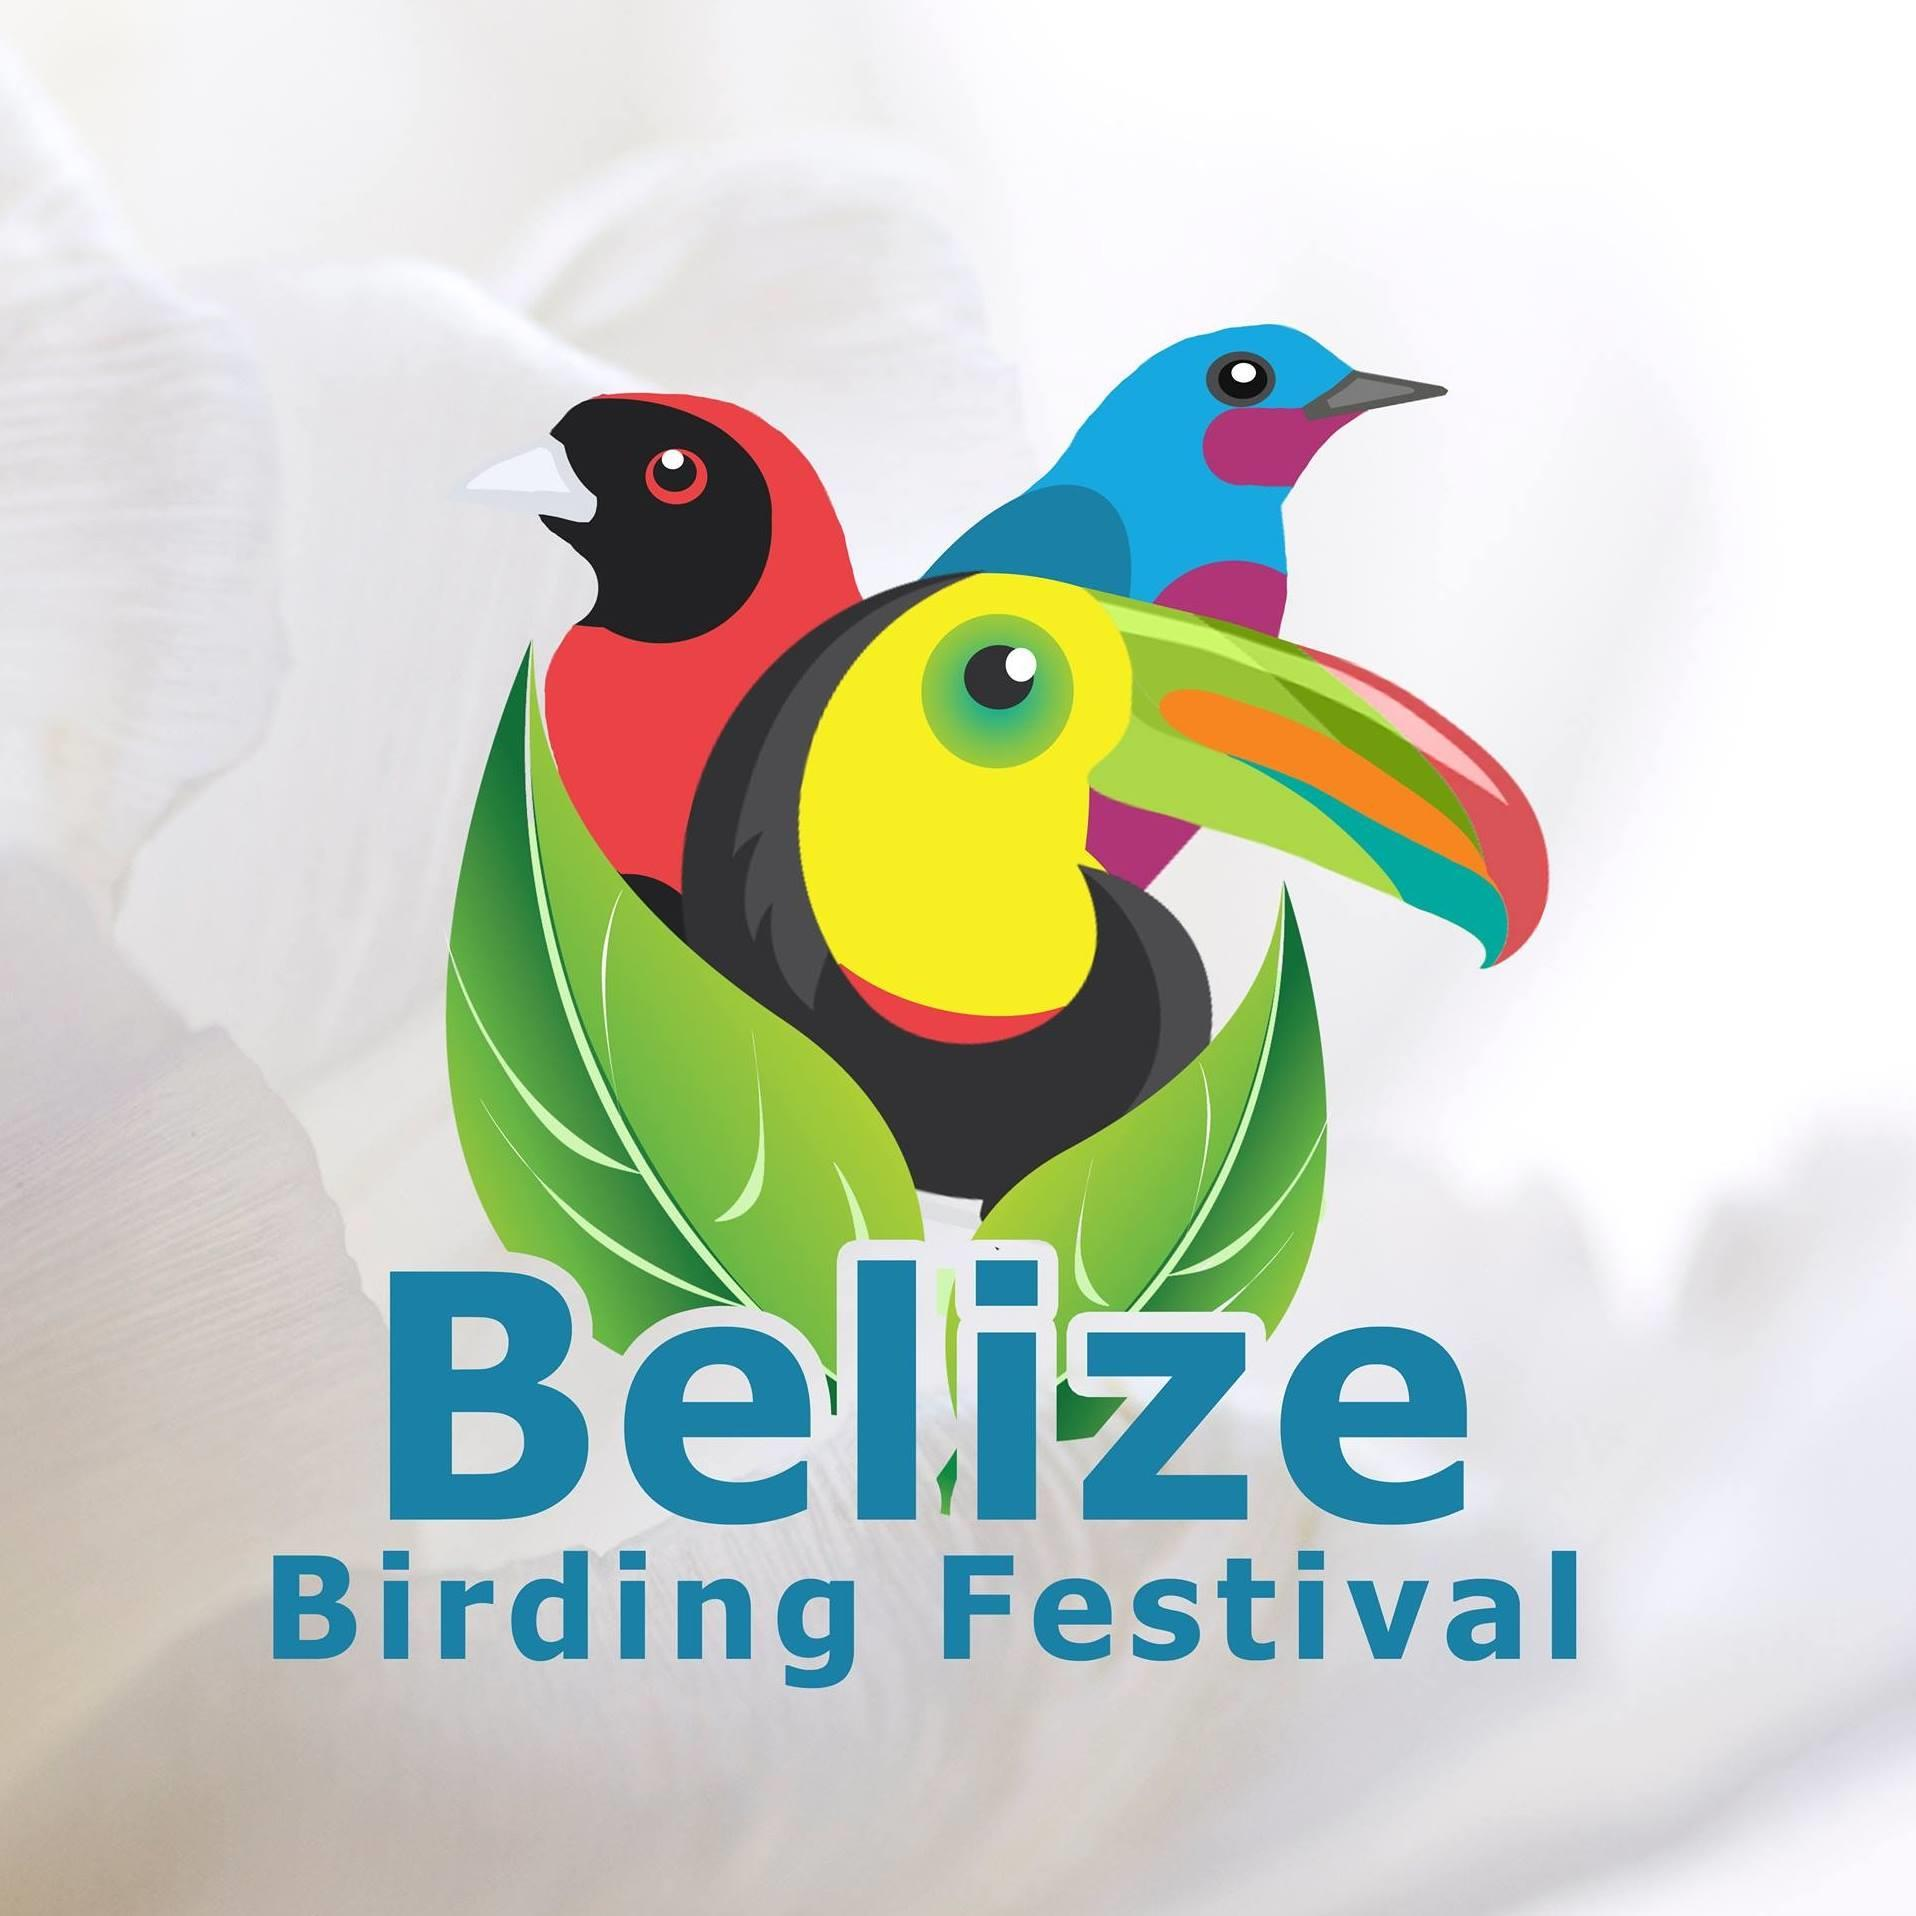 Flock to Belize for the First Annual Birding Festival